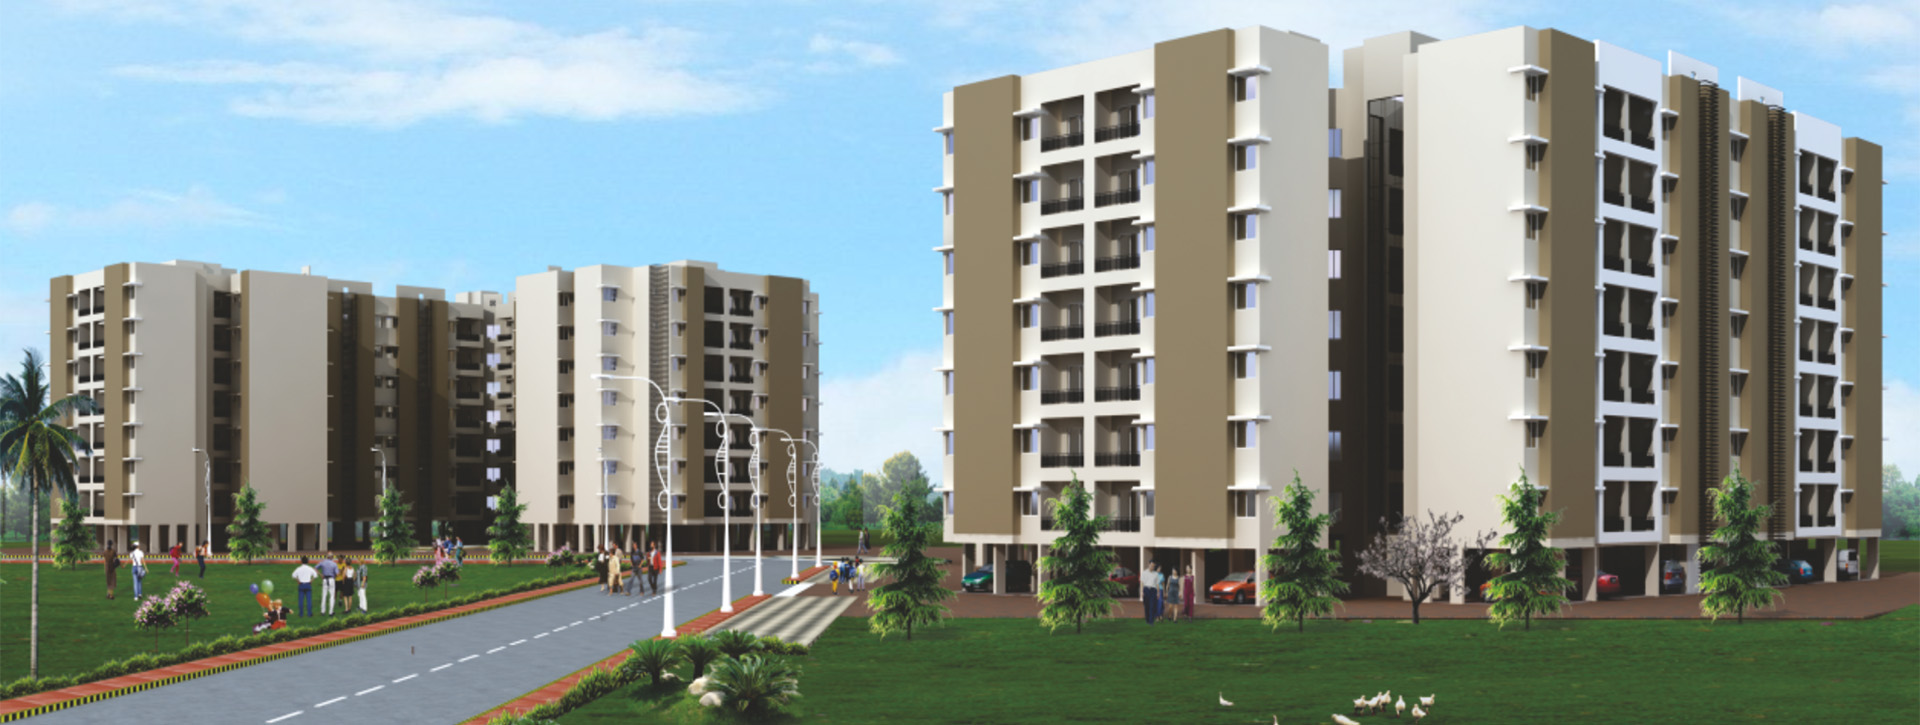 3 BHK Flats In Nagpur - The Empyrean Nagpur